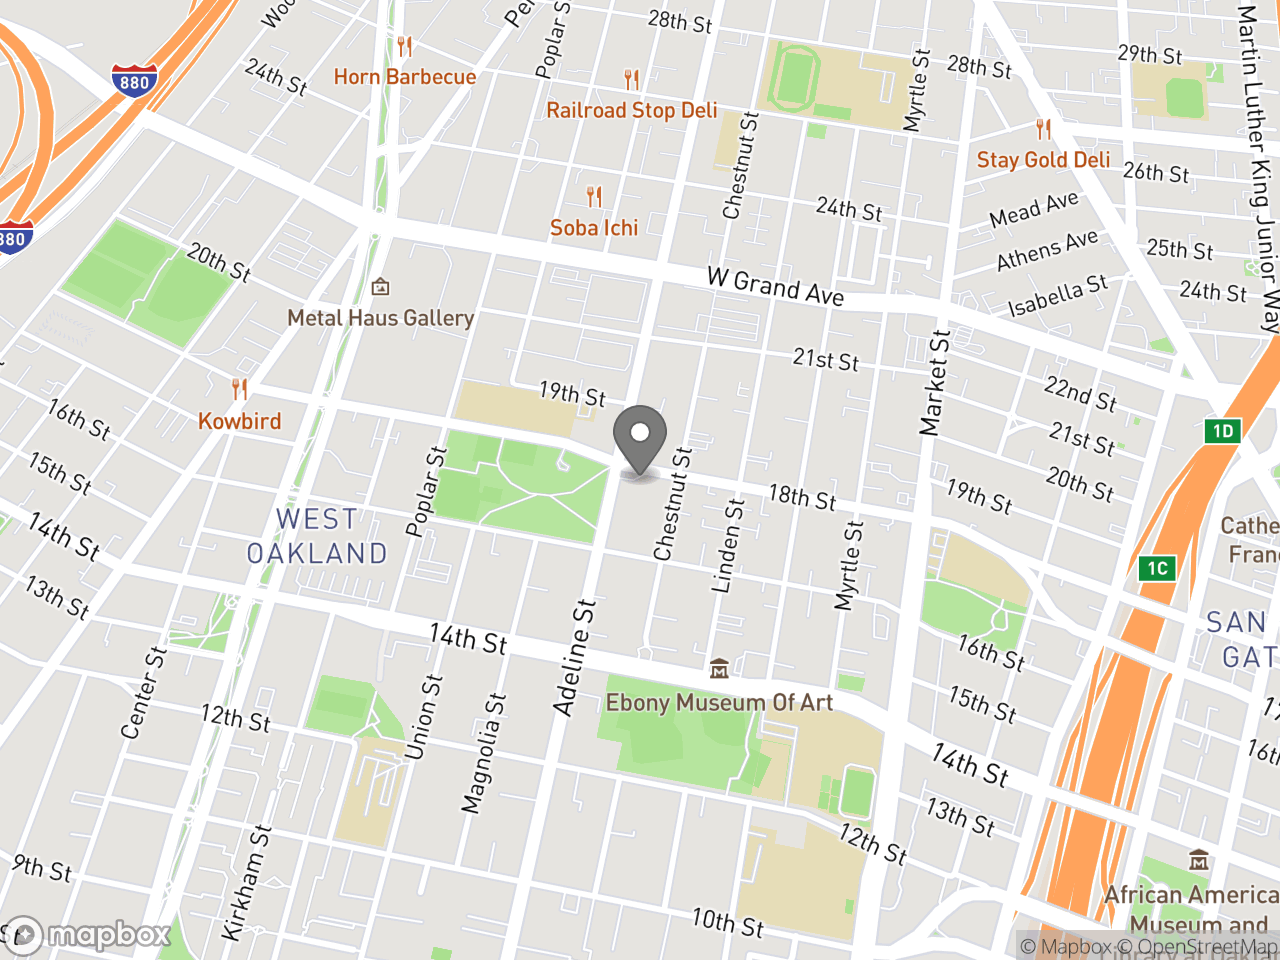 Map image for West Oakland Senior Center, located at 1724 Adeline St in Oakland, CA 94607